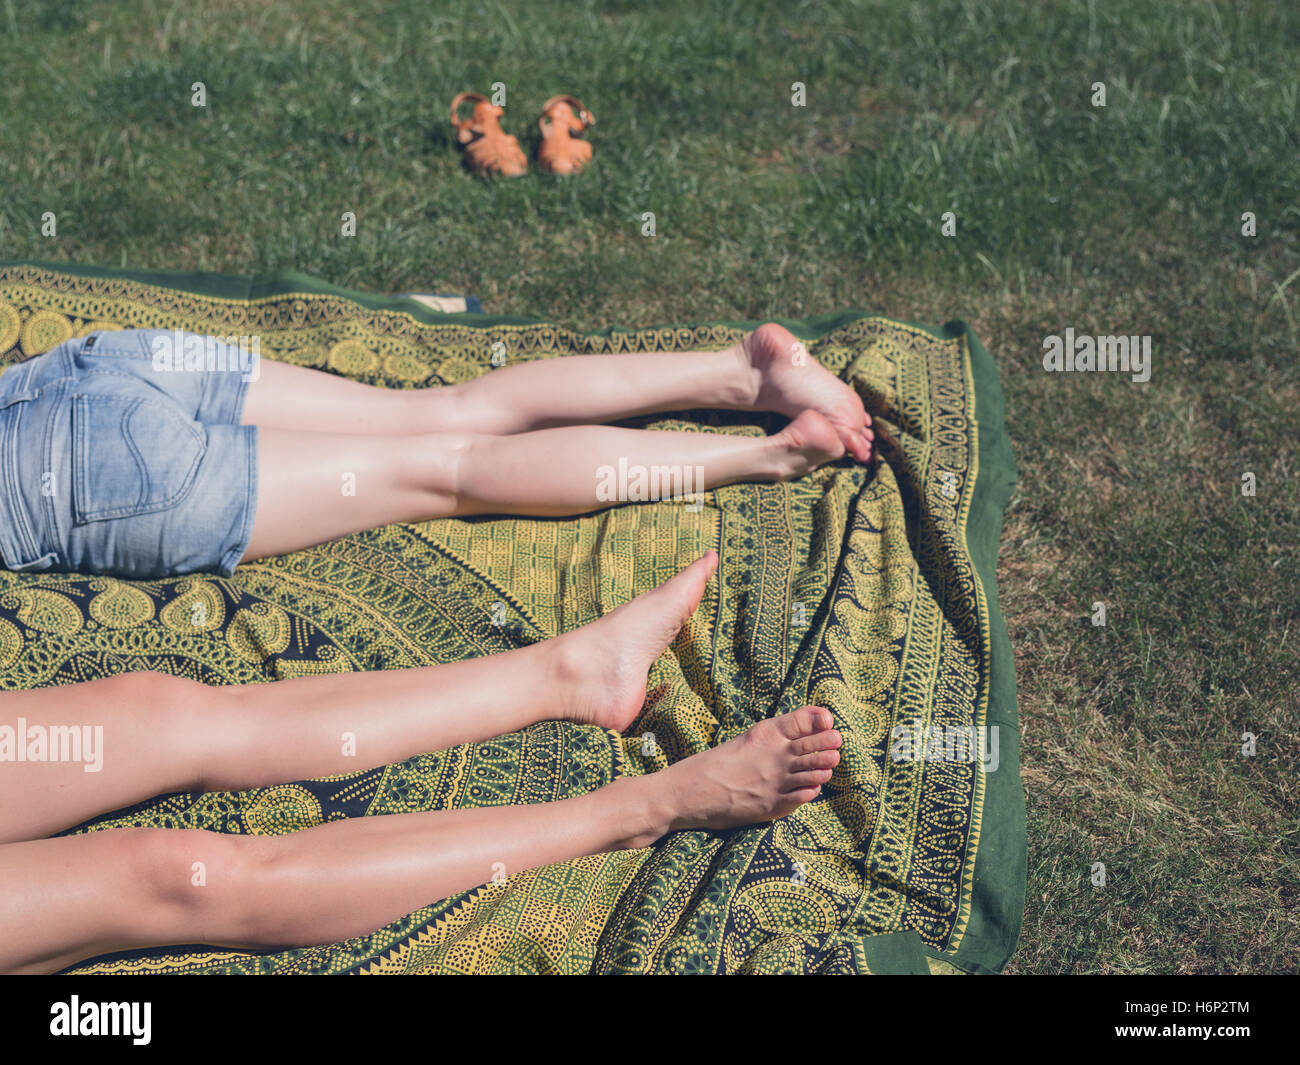 The legs of two young women as they are relaxing on the grass outside on a sunny day - Stock Image